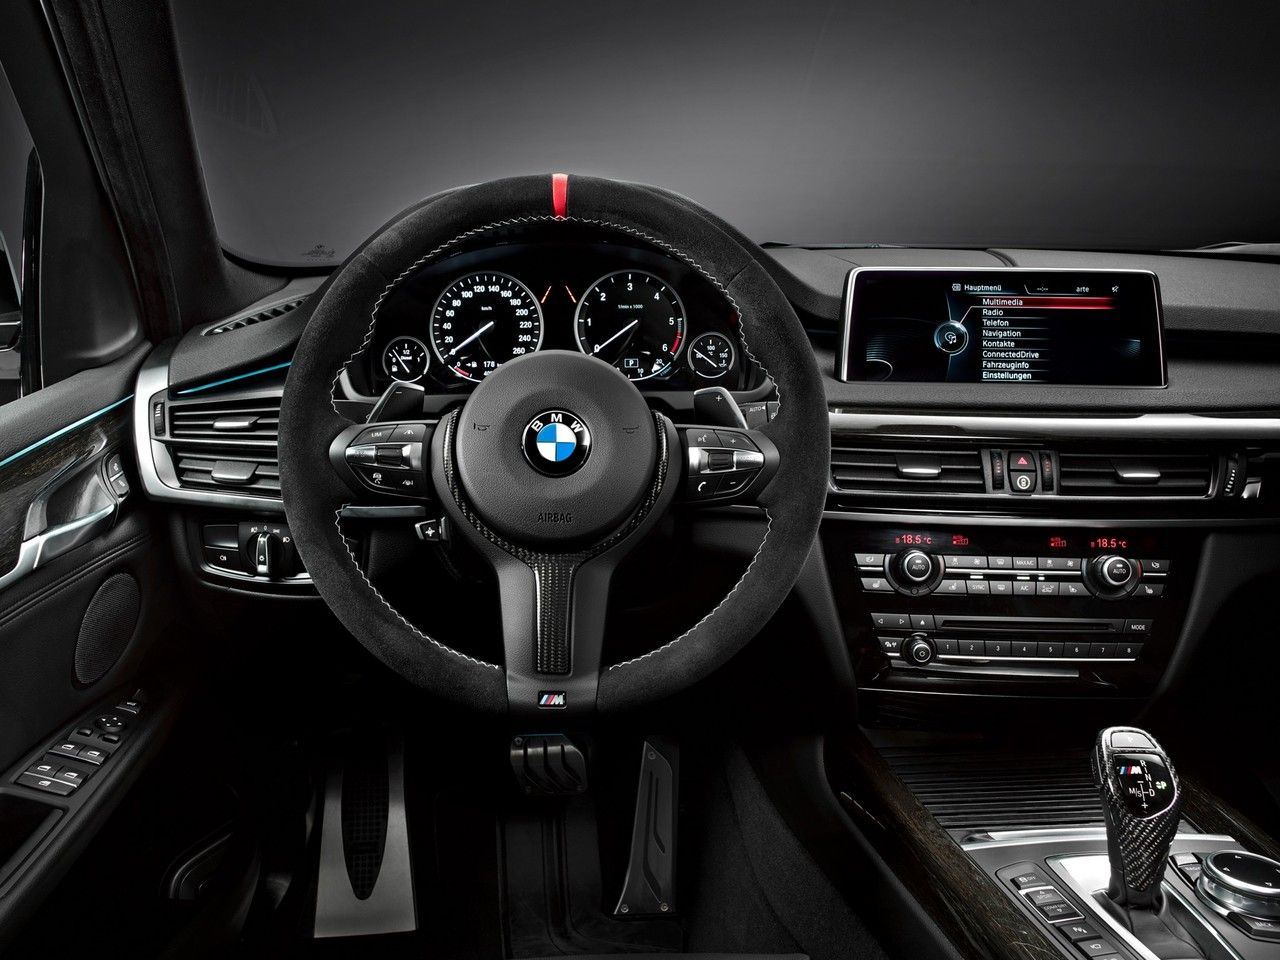 2013 BMW X5 M Love My Interior Black On Dark Wood Grain